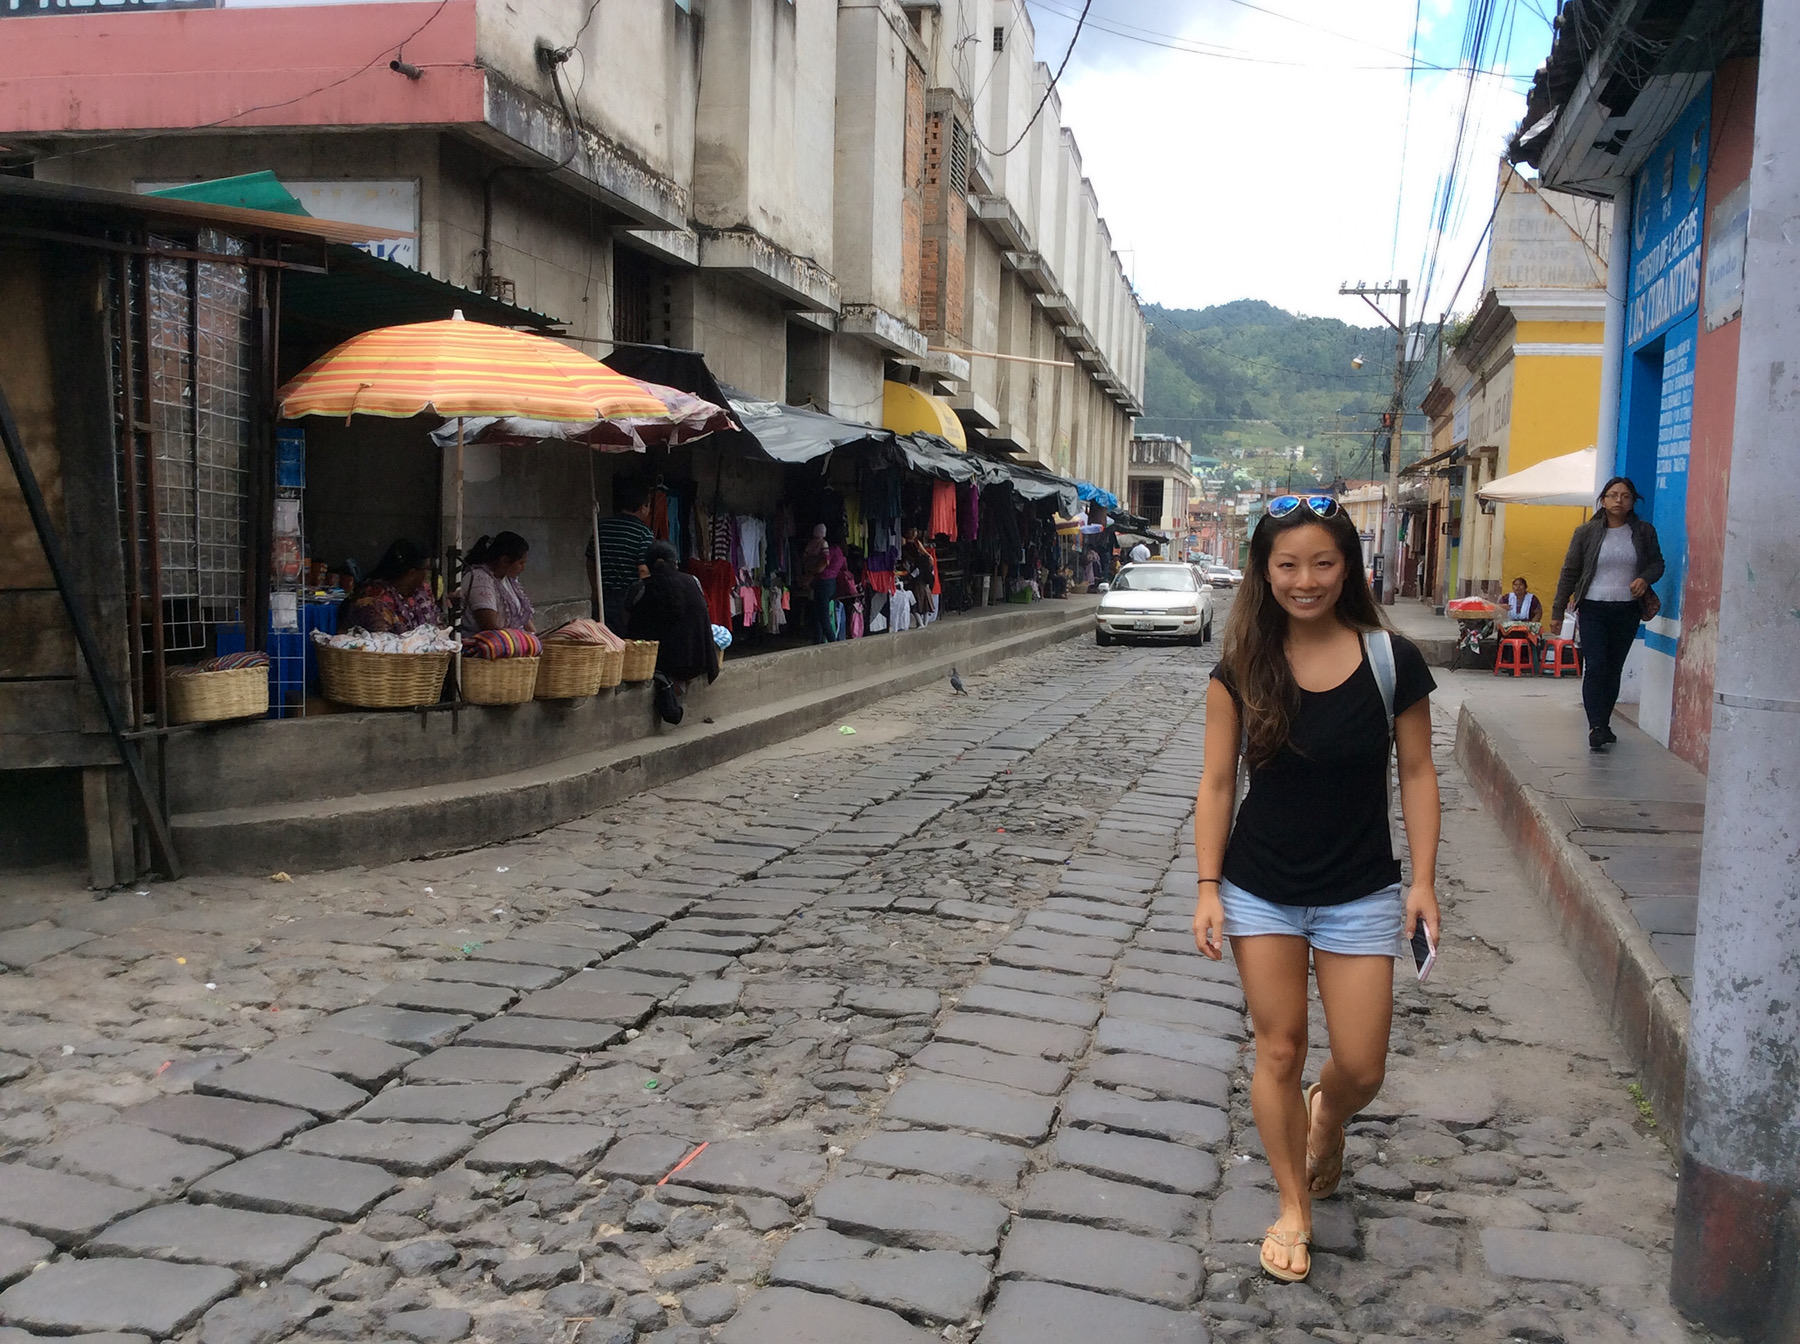 Walking to Parque Central